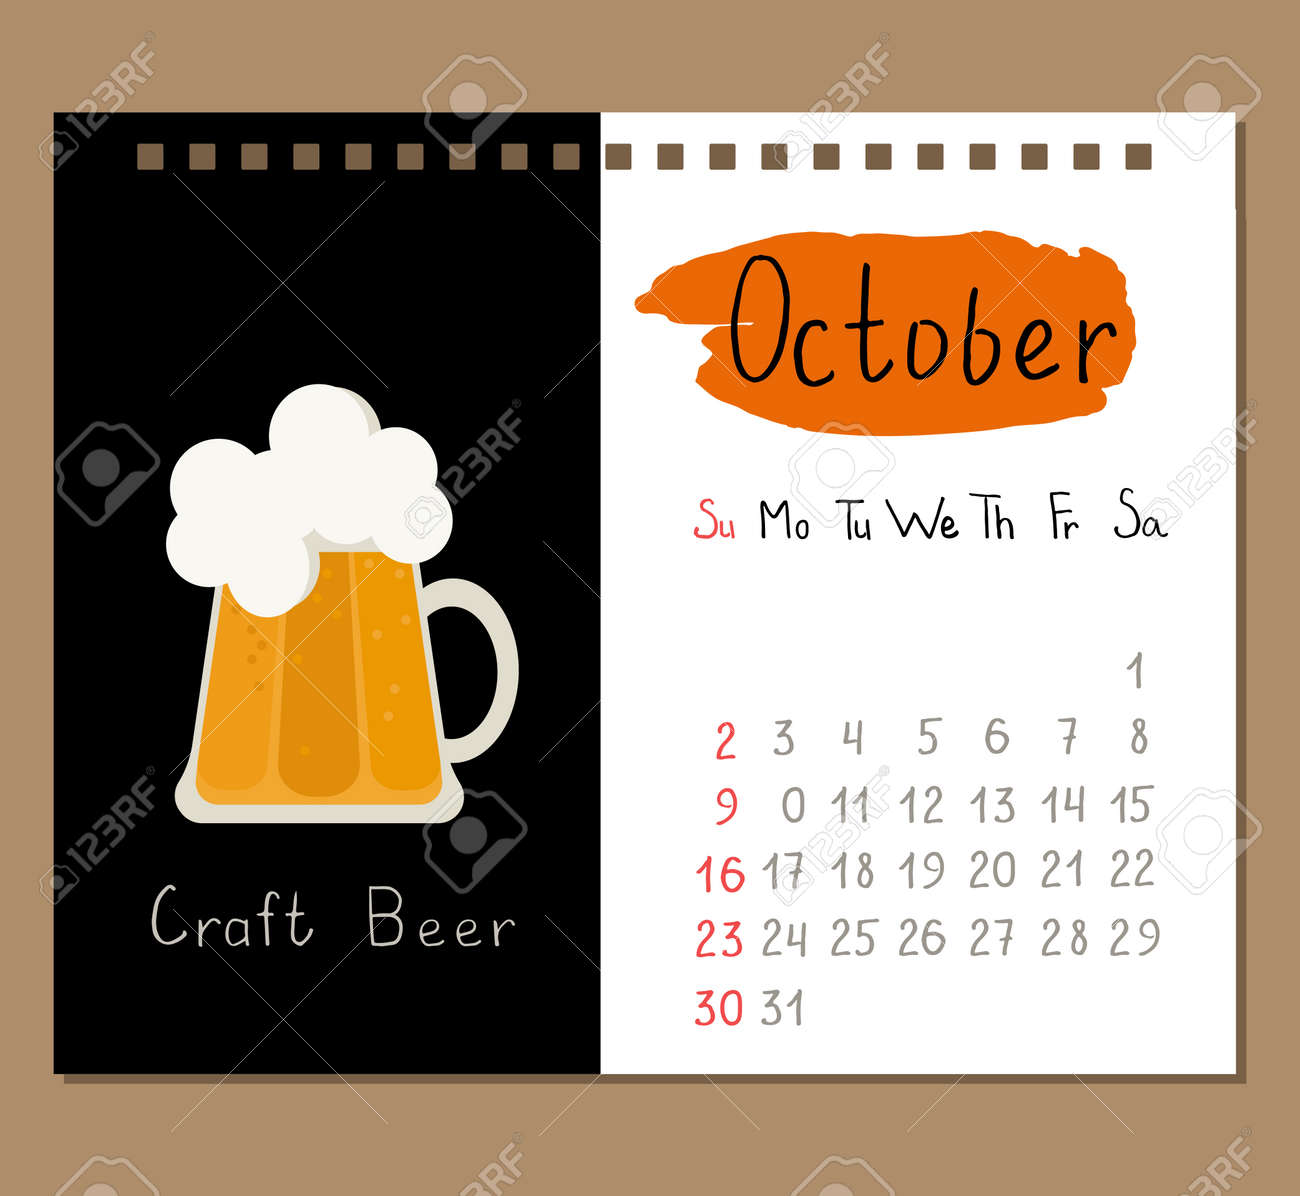 Calendar page template for october with craft beer flat icon calendar page template for october with craft beer flat icon stock vector 65551386 saigontimesfo